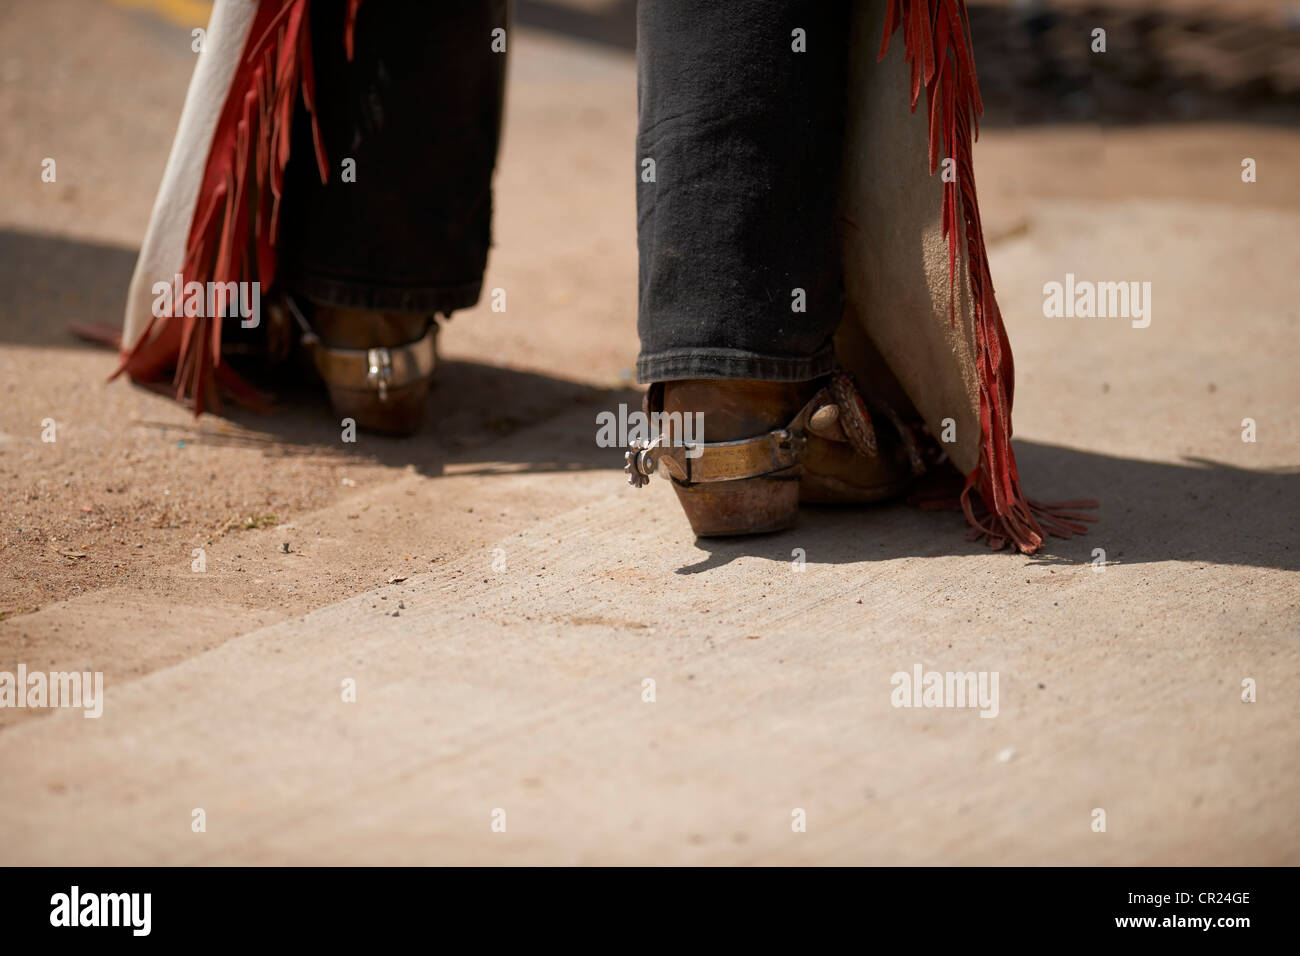 Cowboy boots, spurs, and chaps at the Calgary Stampede - Stock Image